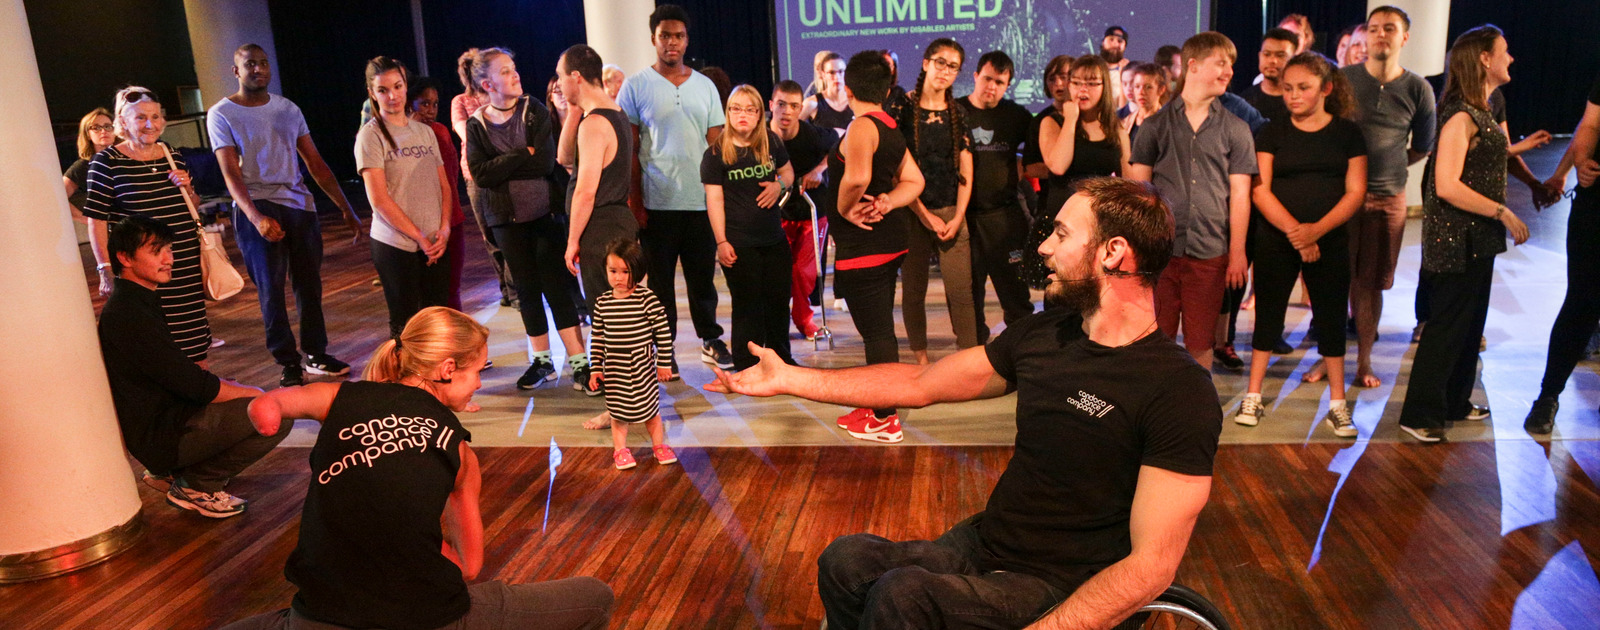 Performers part of the Unlimited Youth Dance Platform in action at Royal Festival Hall